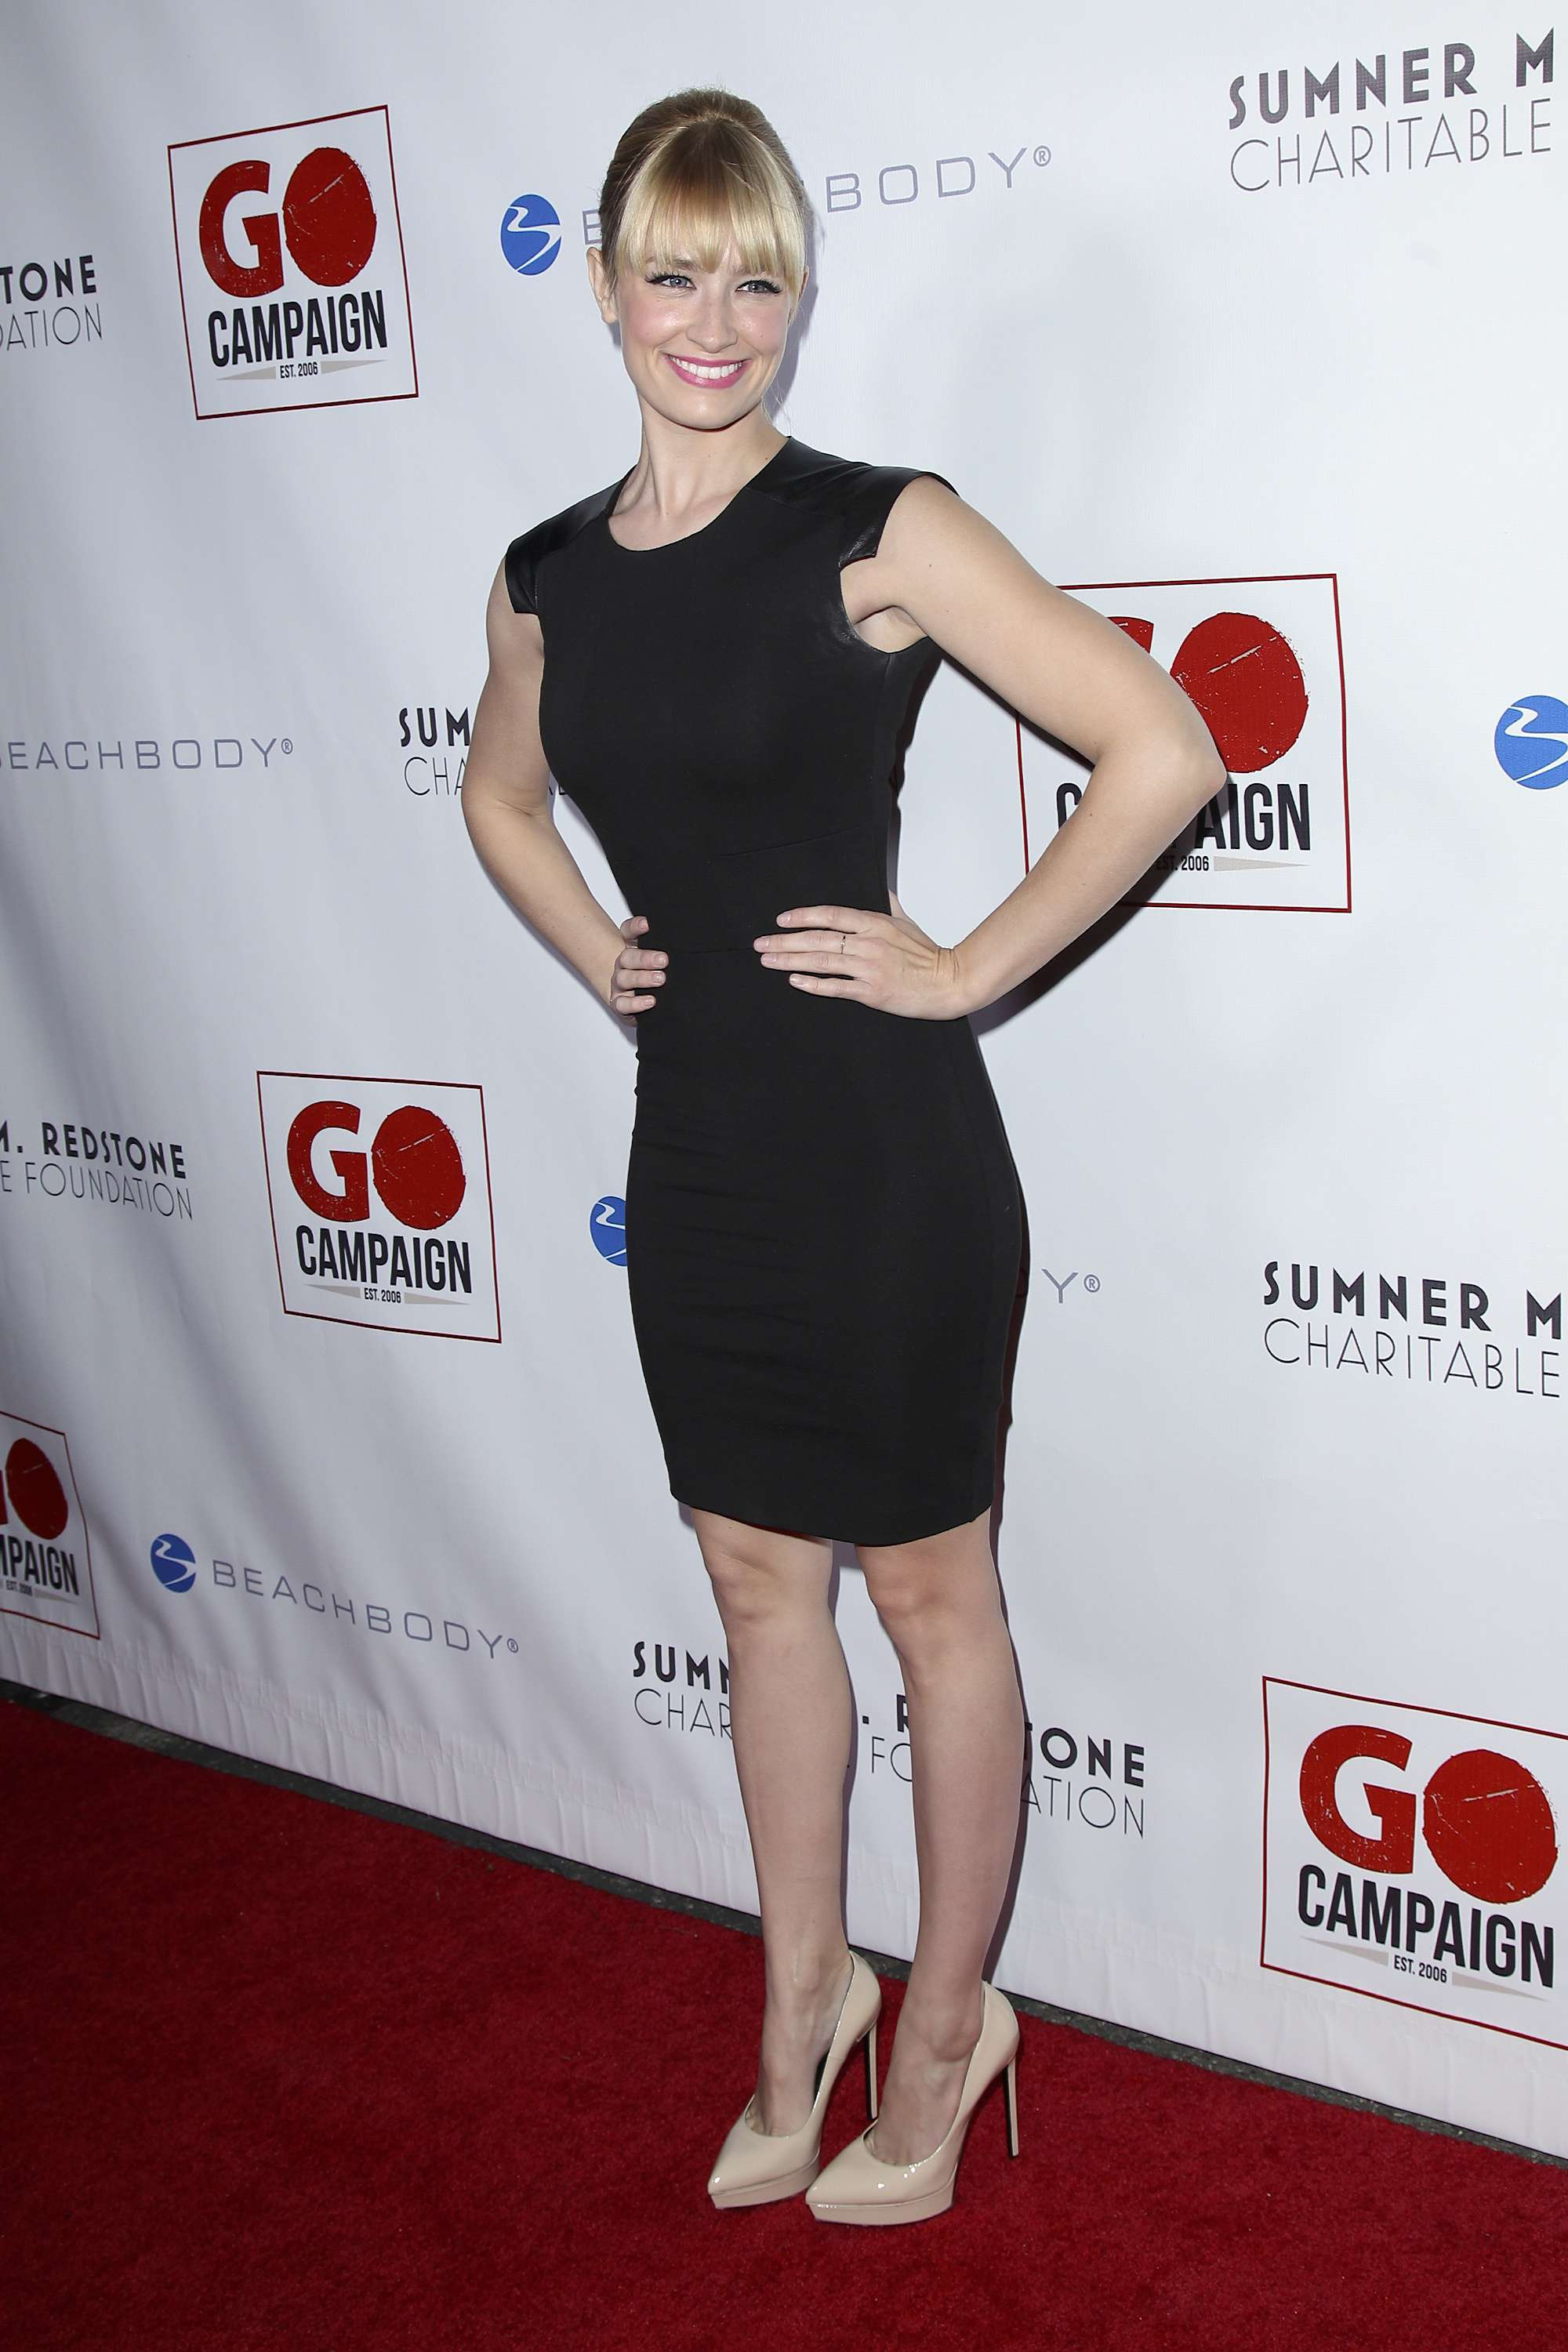 Beth Behrs 6th Annual GO GO Gala (November 14, 2013)